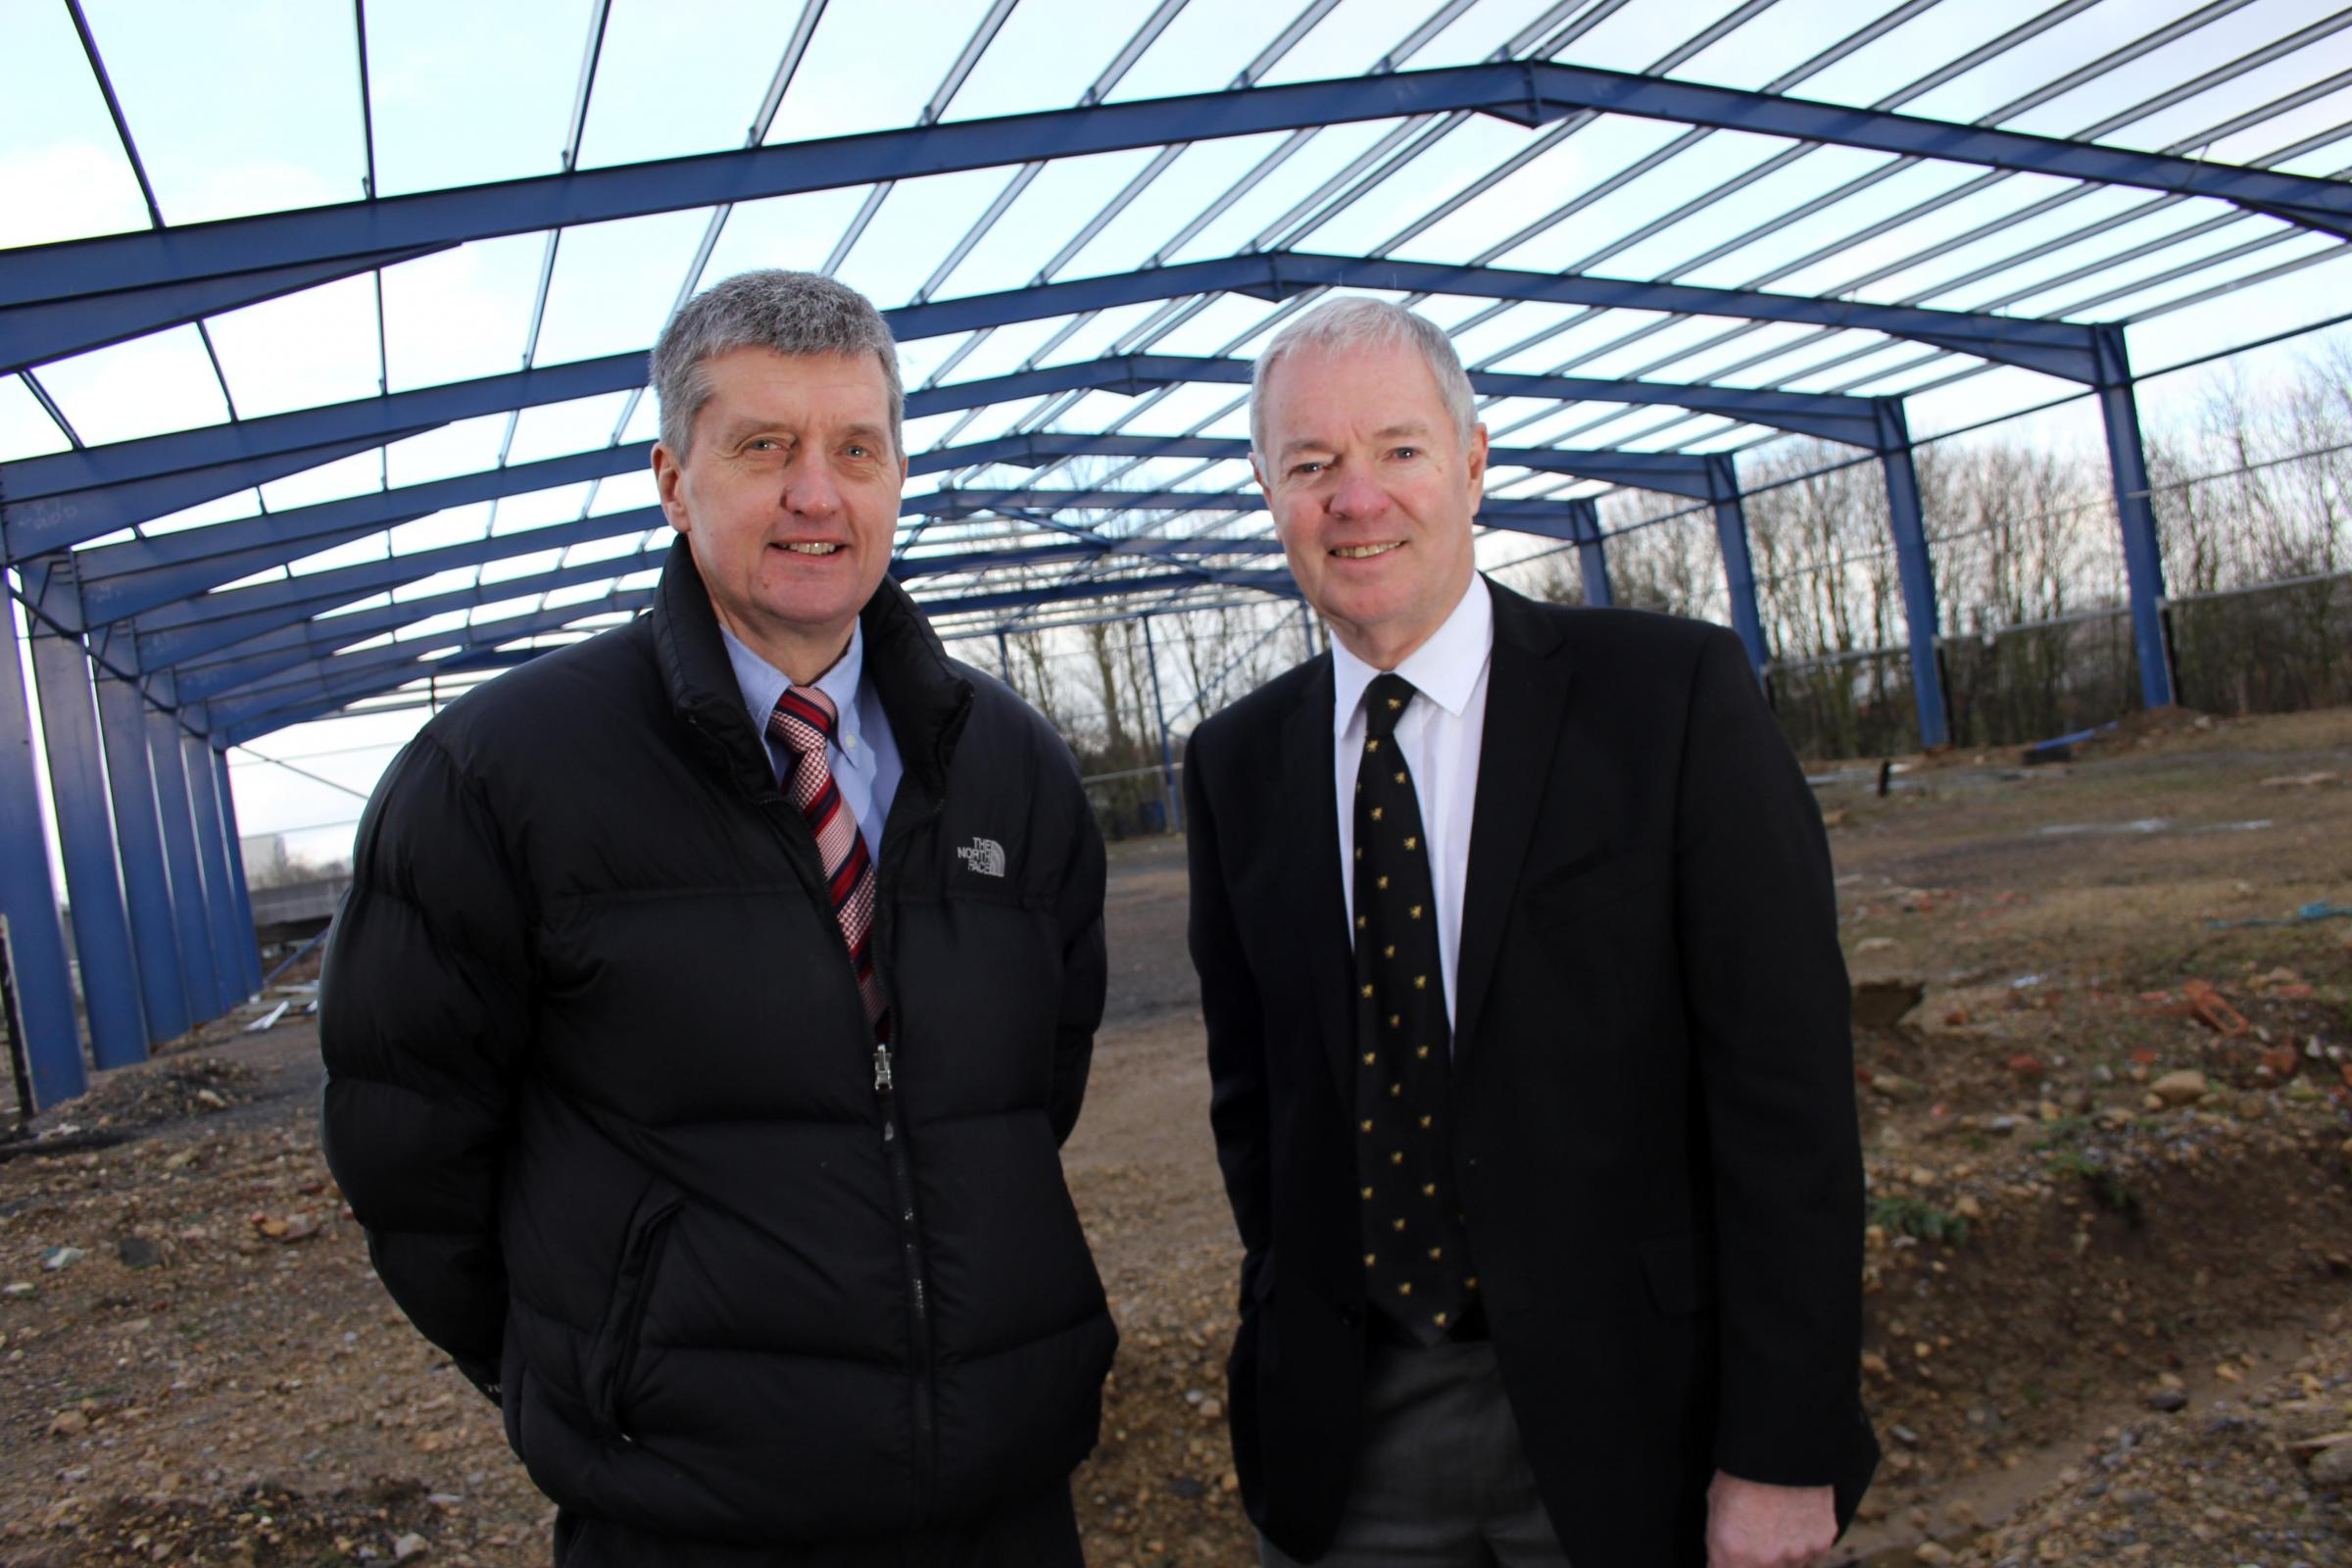 Stiller Warehousing and Distribution managing director Paul Stiller and Andrew Winney, director and company secretary, at the firm's new facility which is currently being constructed